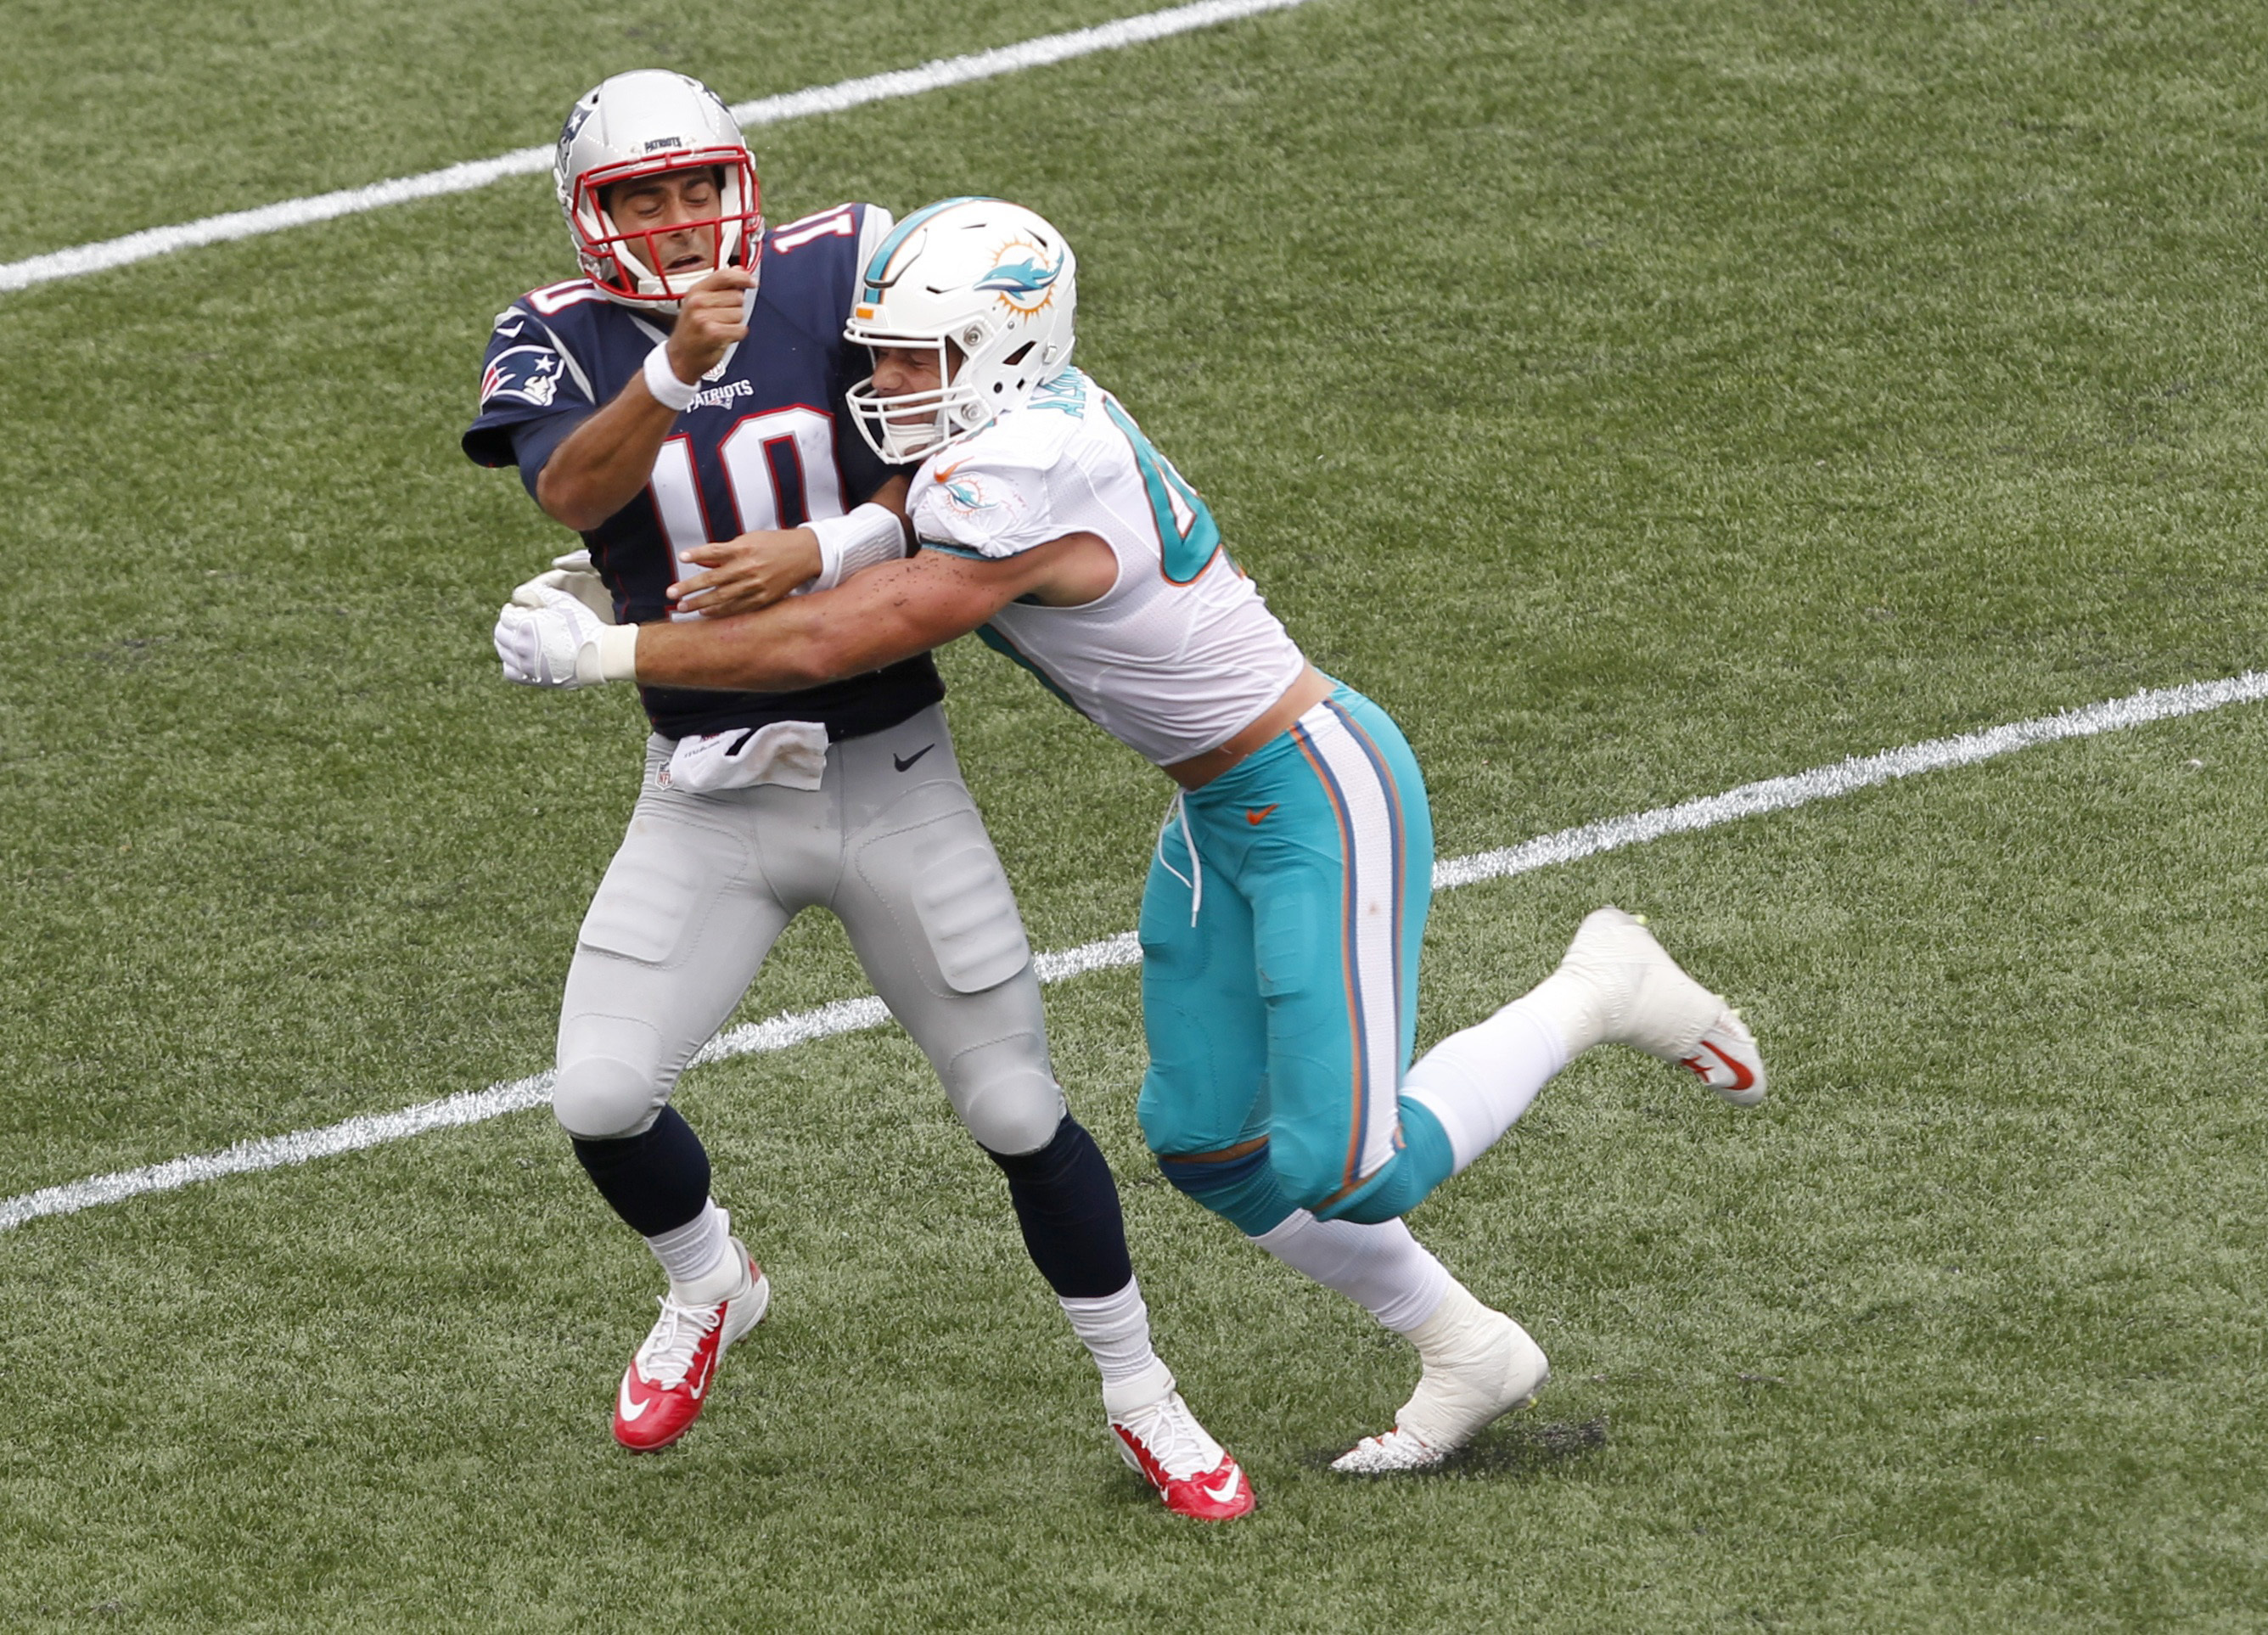 Miami Dolphins linebacker Kiko Alonso, right, hits New England Patriots quarterback Jimmy Garoppolo (10) after he threw a pass during the first half of an NFL football game Sunday, Sept. 18, 2016, in Foxborough, Mass. Garoppolo was injured on the play and